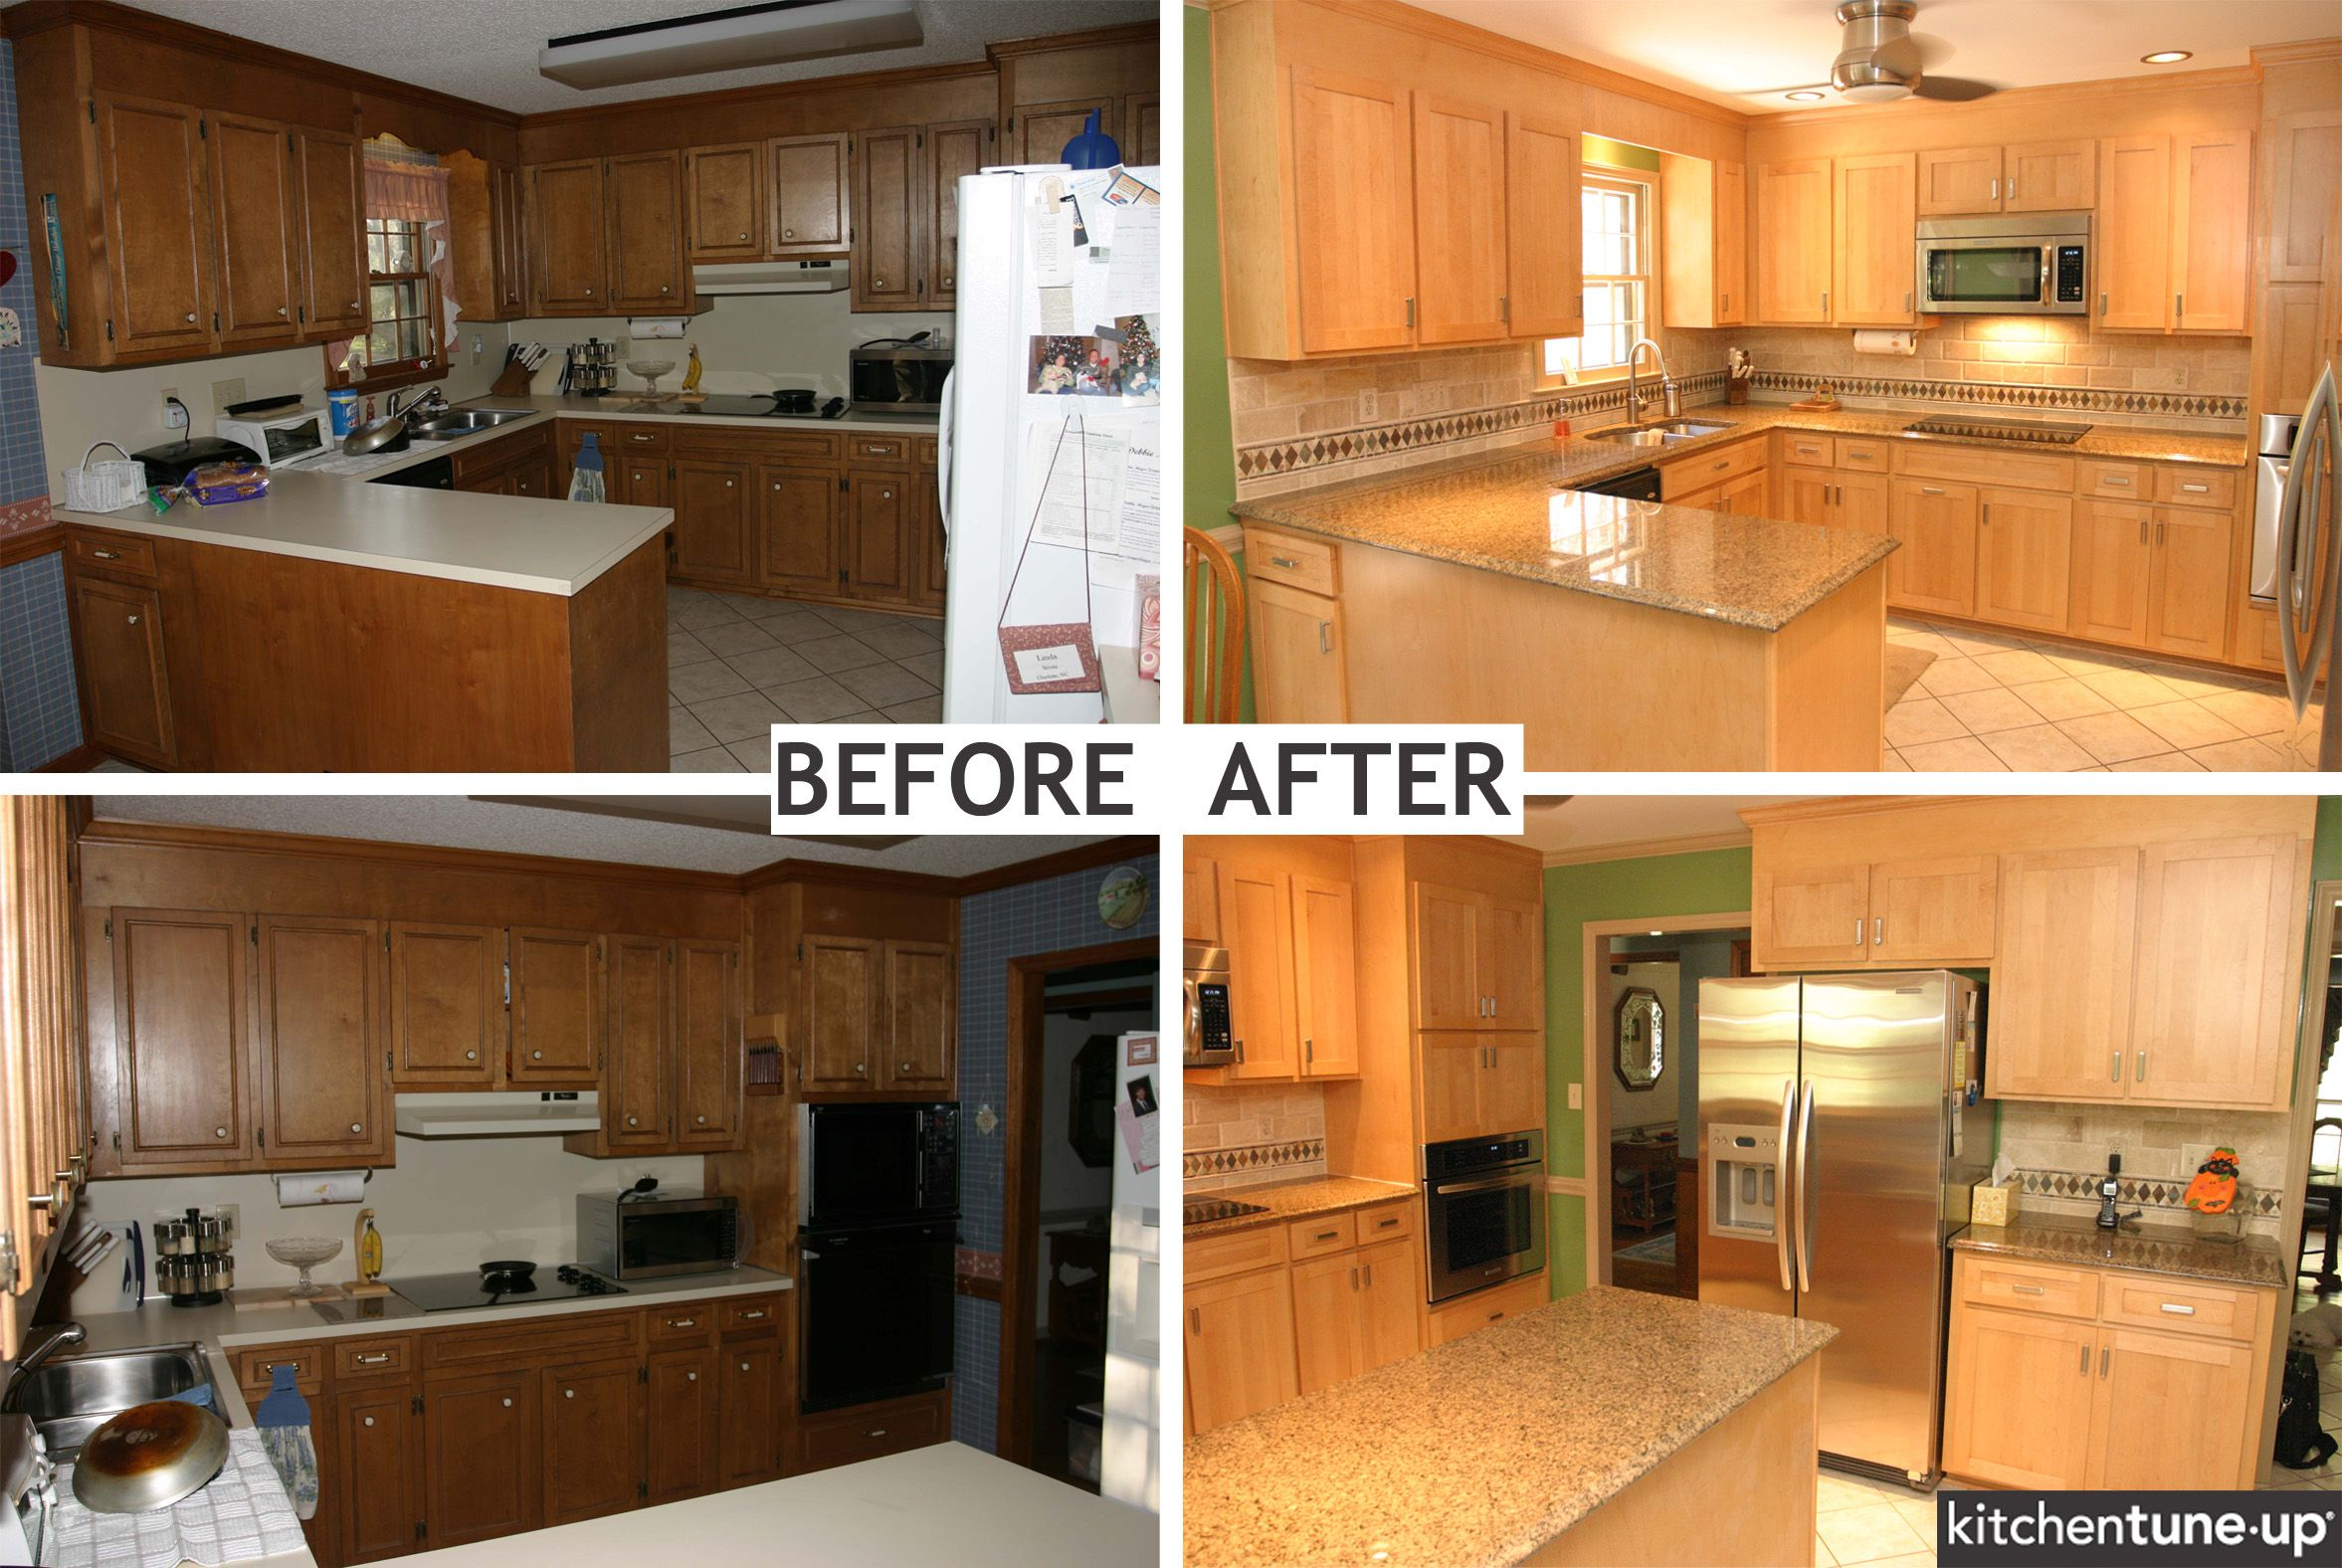 Get Ideas To Reface Kitchen Cabinets Darbylanefurniture Com In 2020 Cheap Kitchen Remodel Kitchen Remodel Small Cheap Kitchen Cabinets